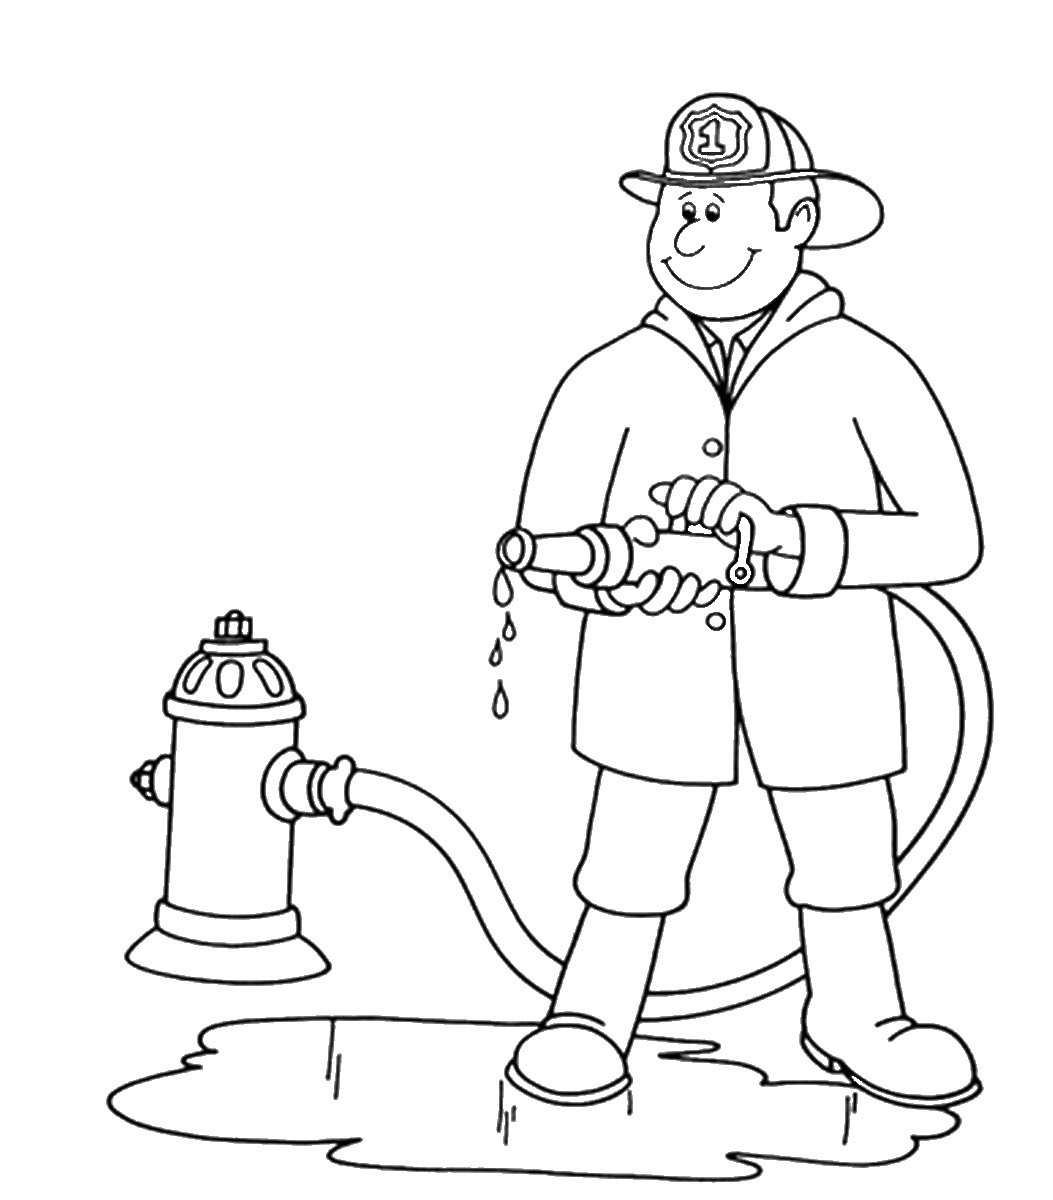 coloring fireman clipart black and white firefighter coloring page free clip art coloring clipart fireman black and white